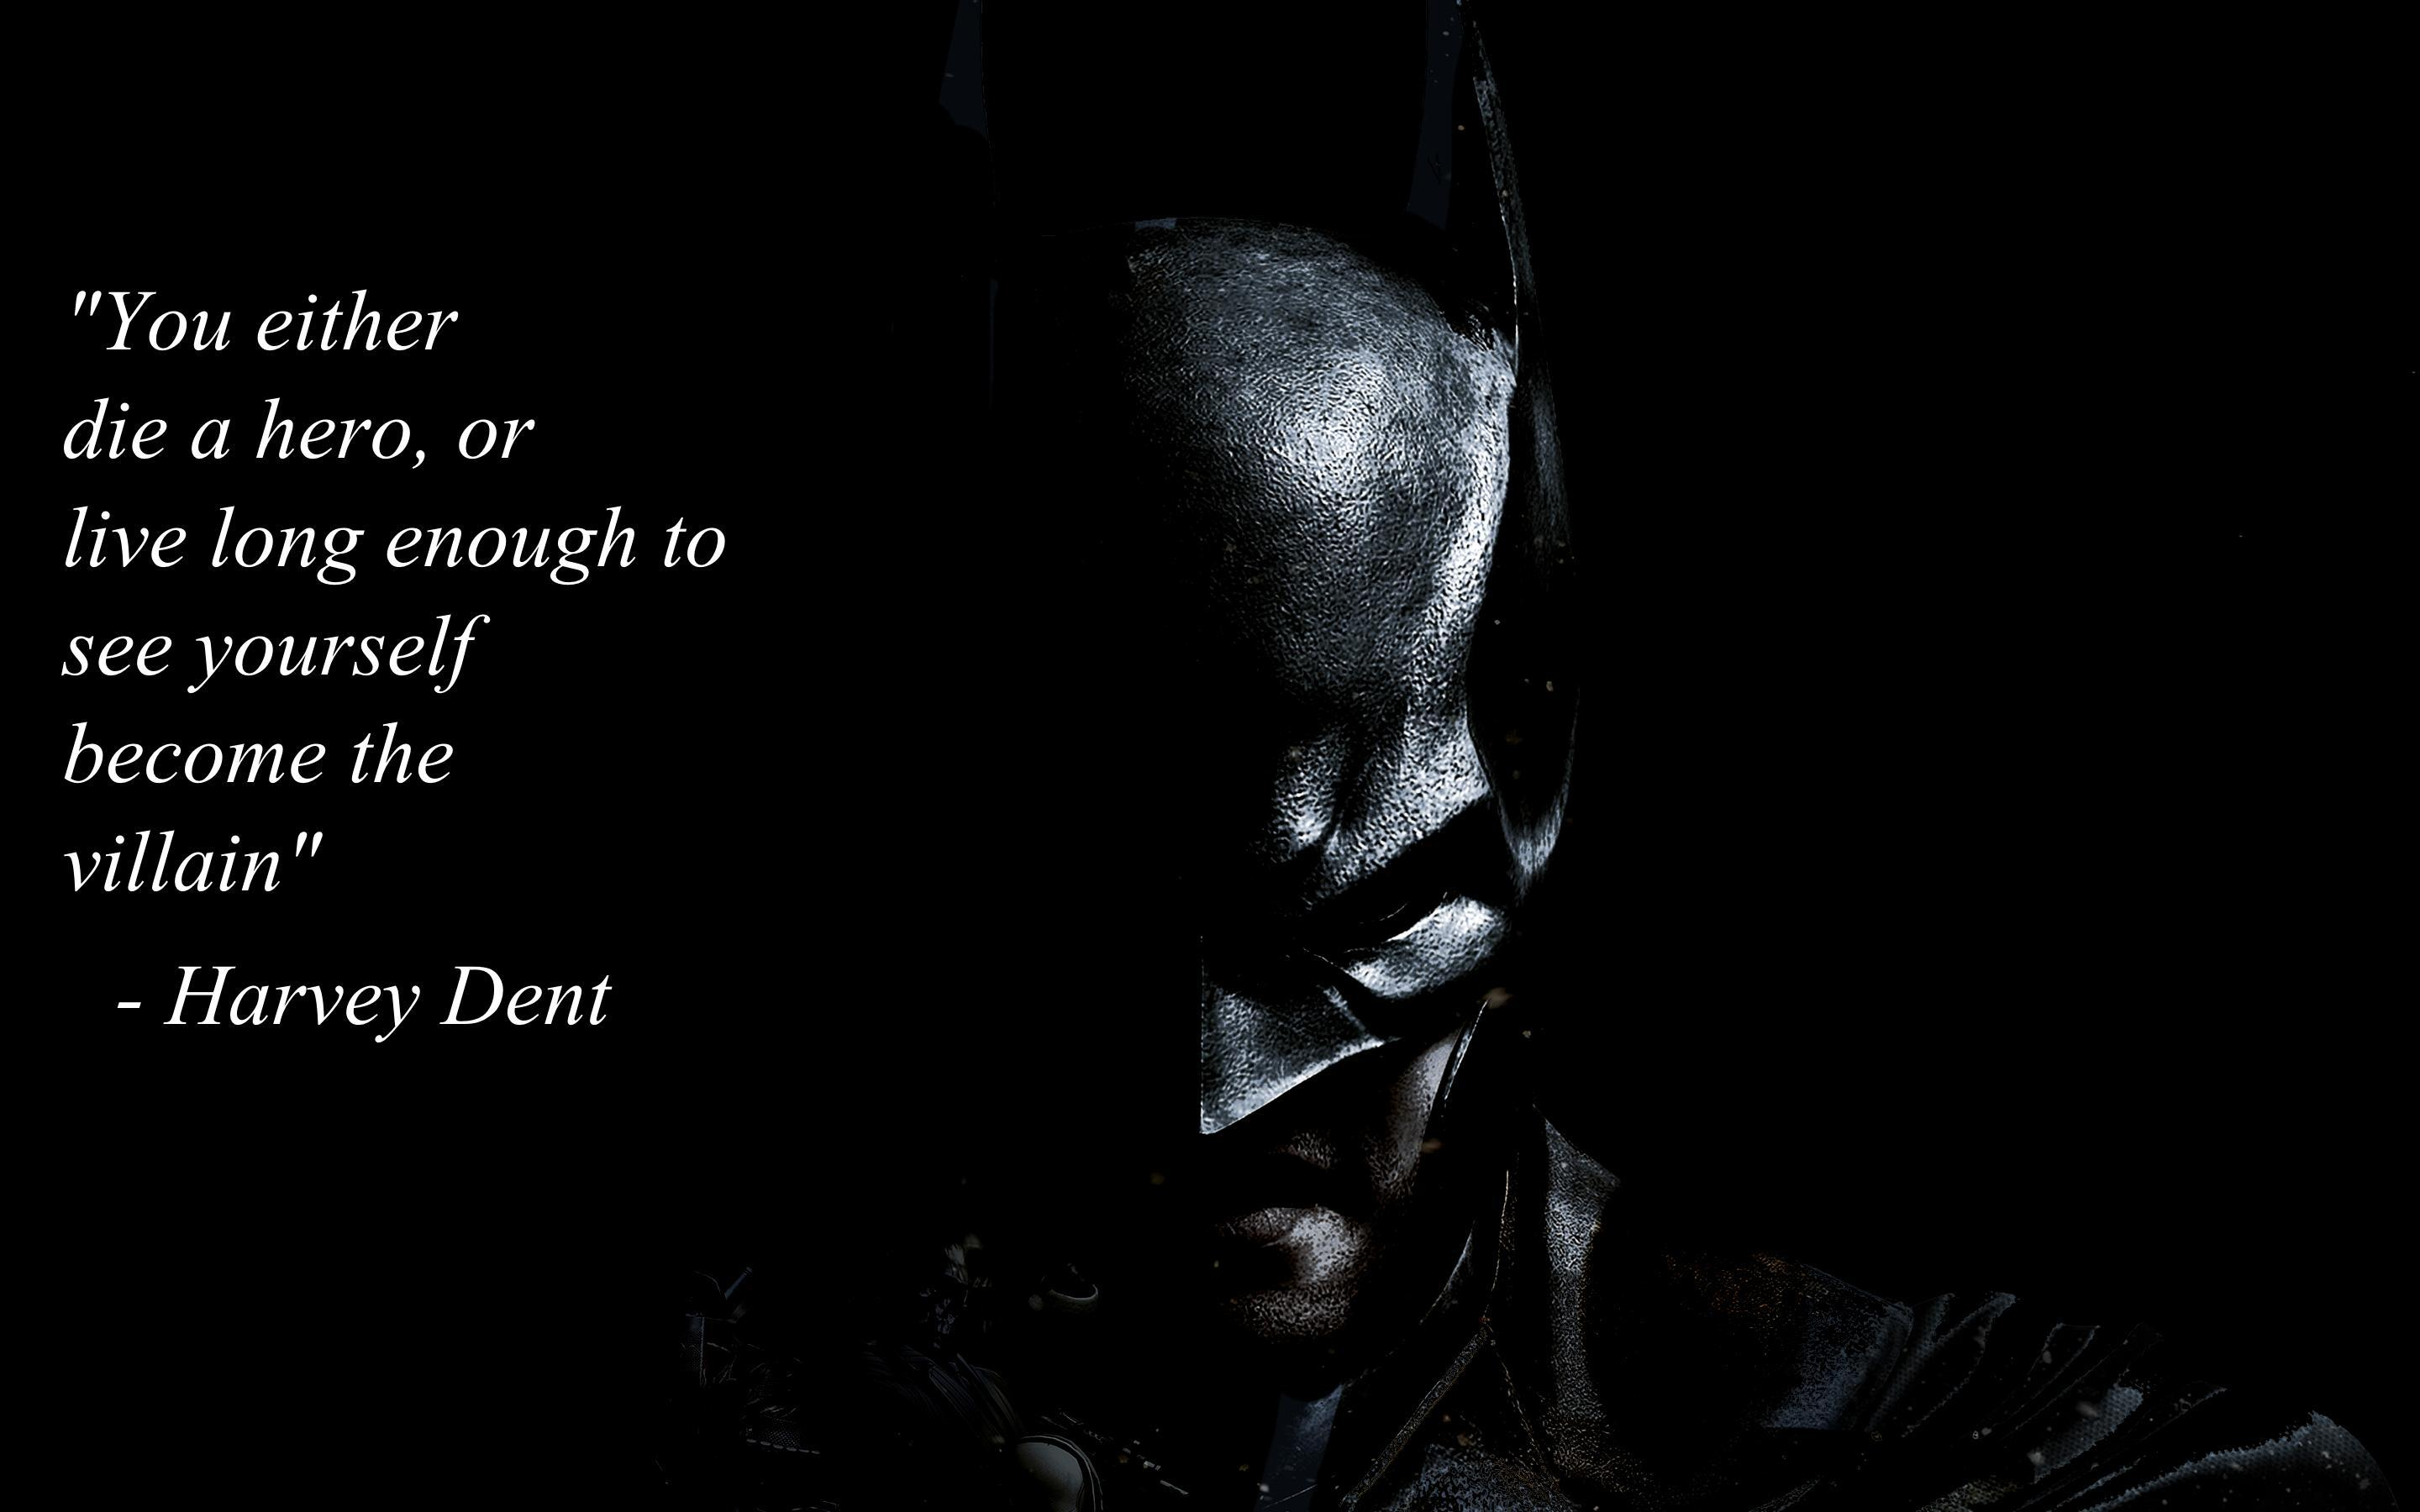 Harvey Dent Quote on a Batman backgrounds [2880x1800] : wallpapers